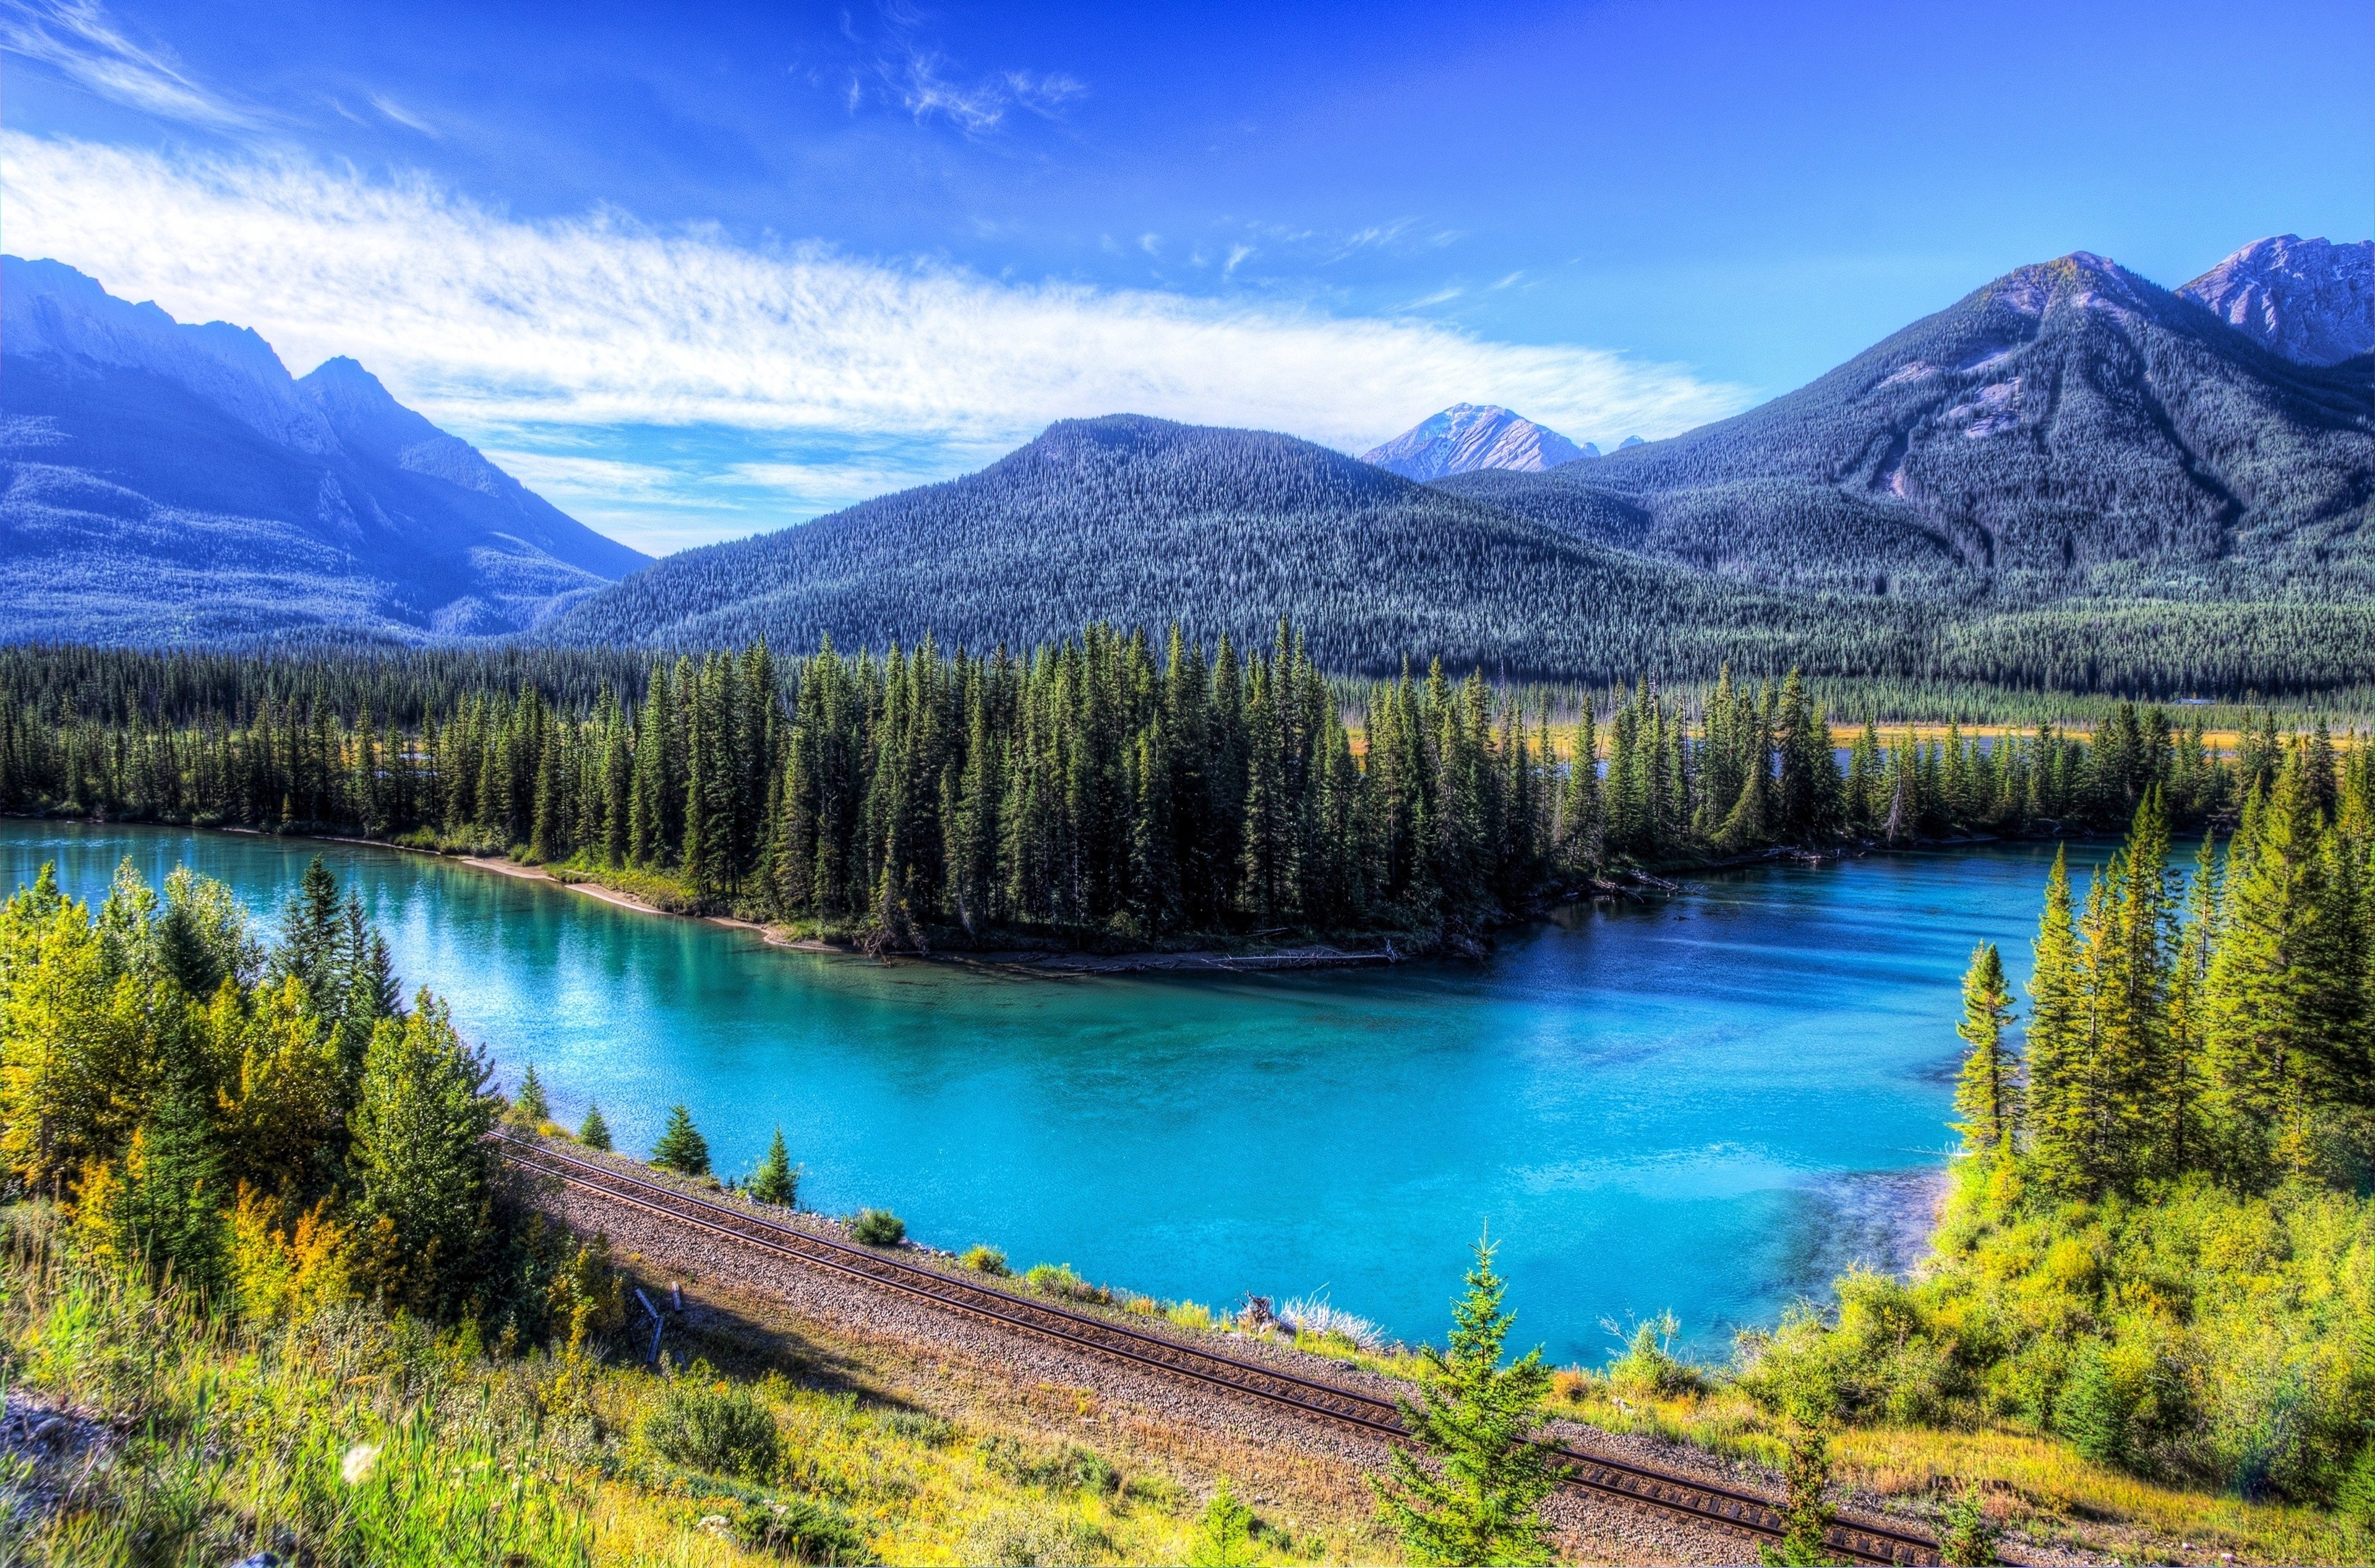 Landscapes Lakes Mountains Stones Trees Forest Green Snow Sky Clouds